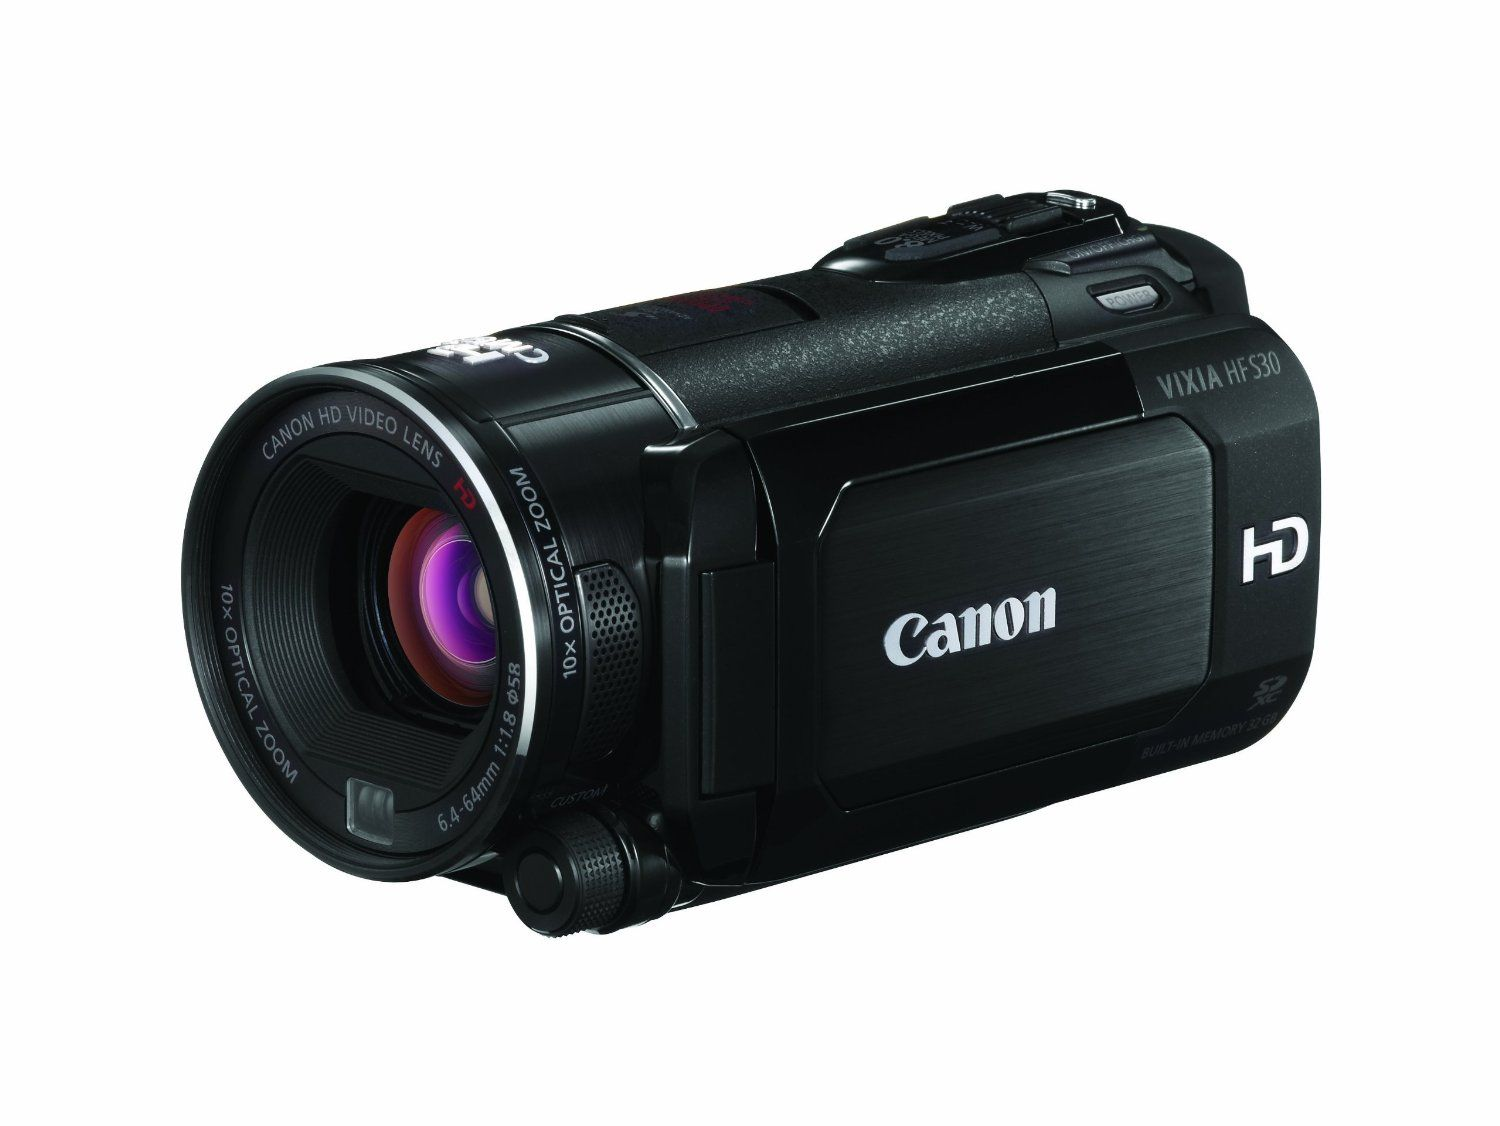 Canon Camcorders Hf S30 Flash Memory Flash Memory Optical Image Camcorder